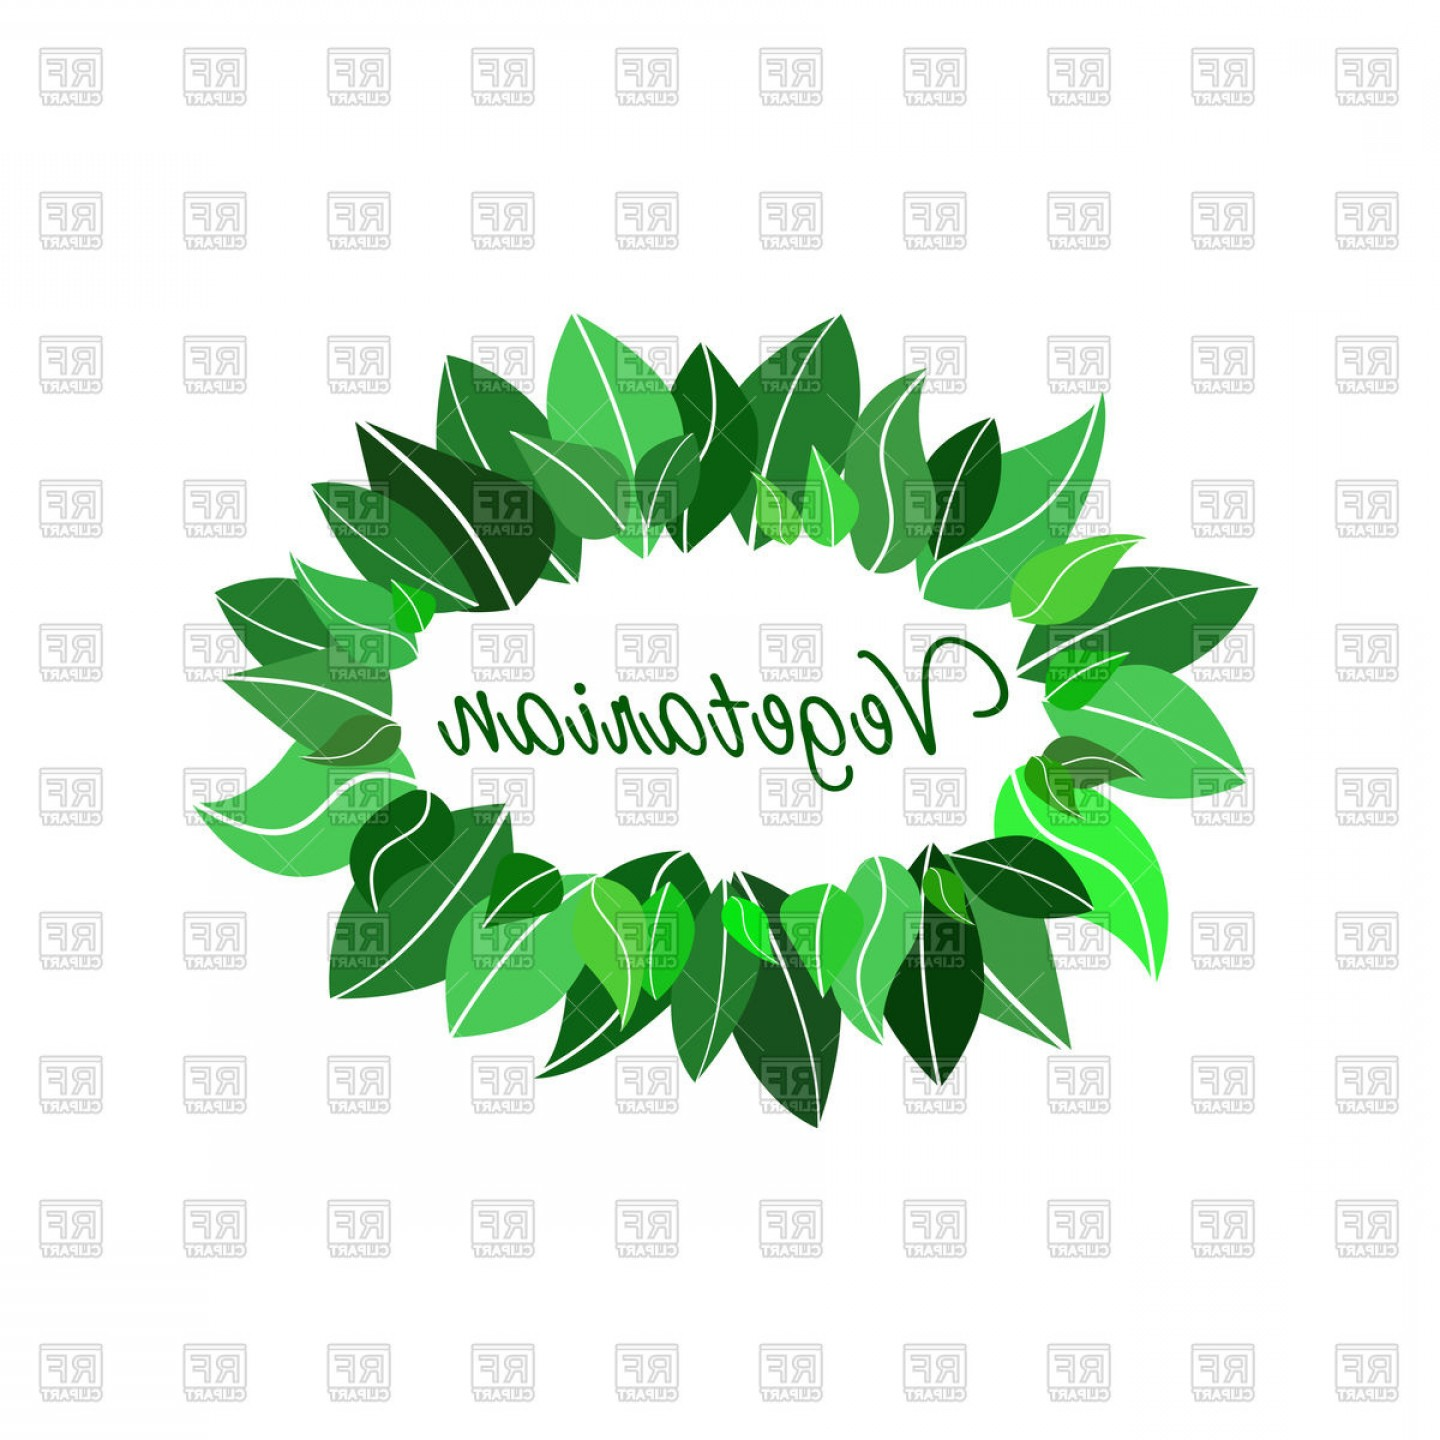 Green Oval Border Vector: Oval Frame Made Of Leaves Concept Of Healthy Vegetarian Product Vector Clipart